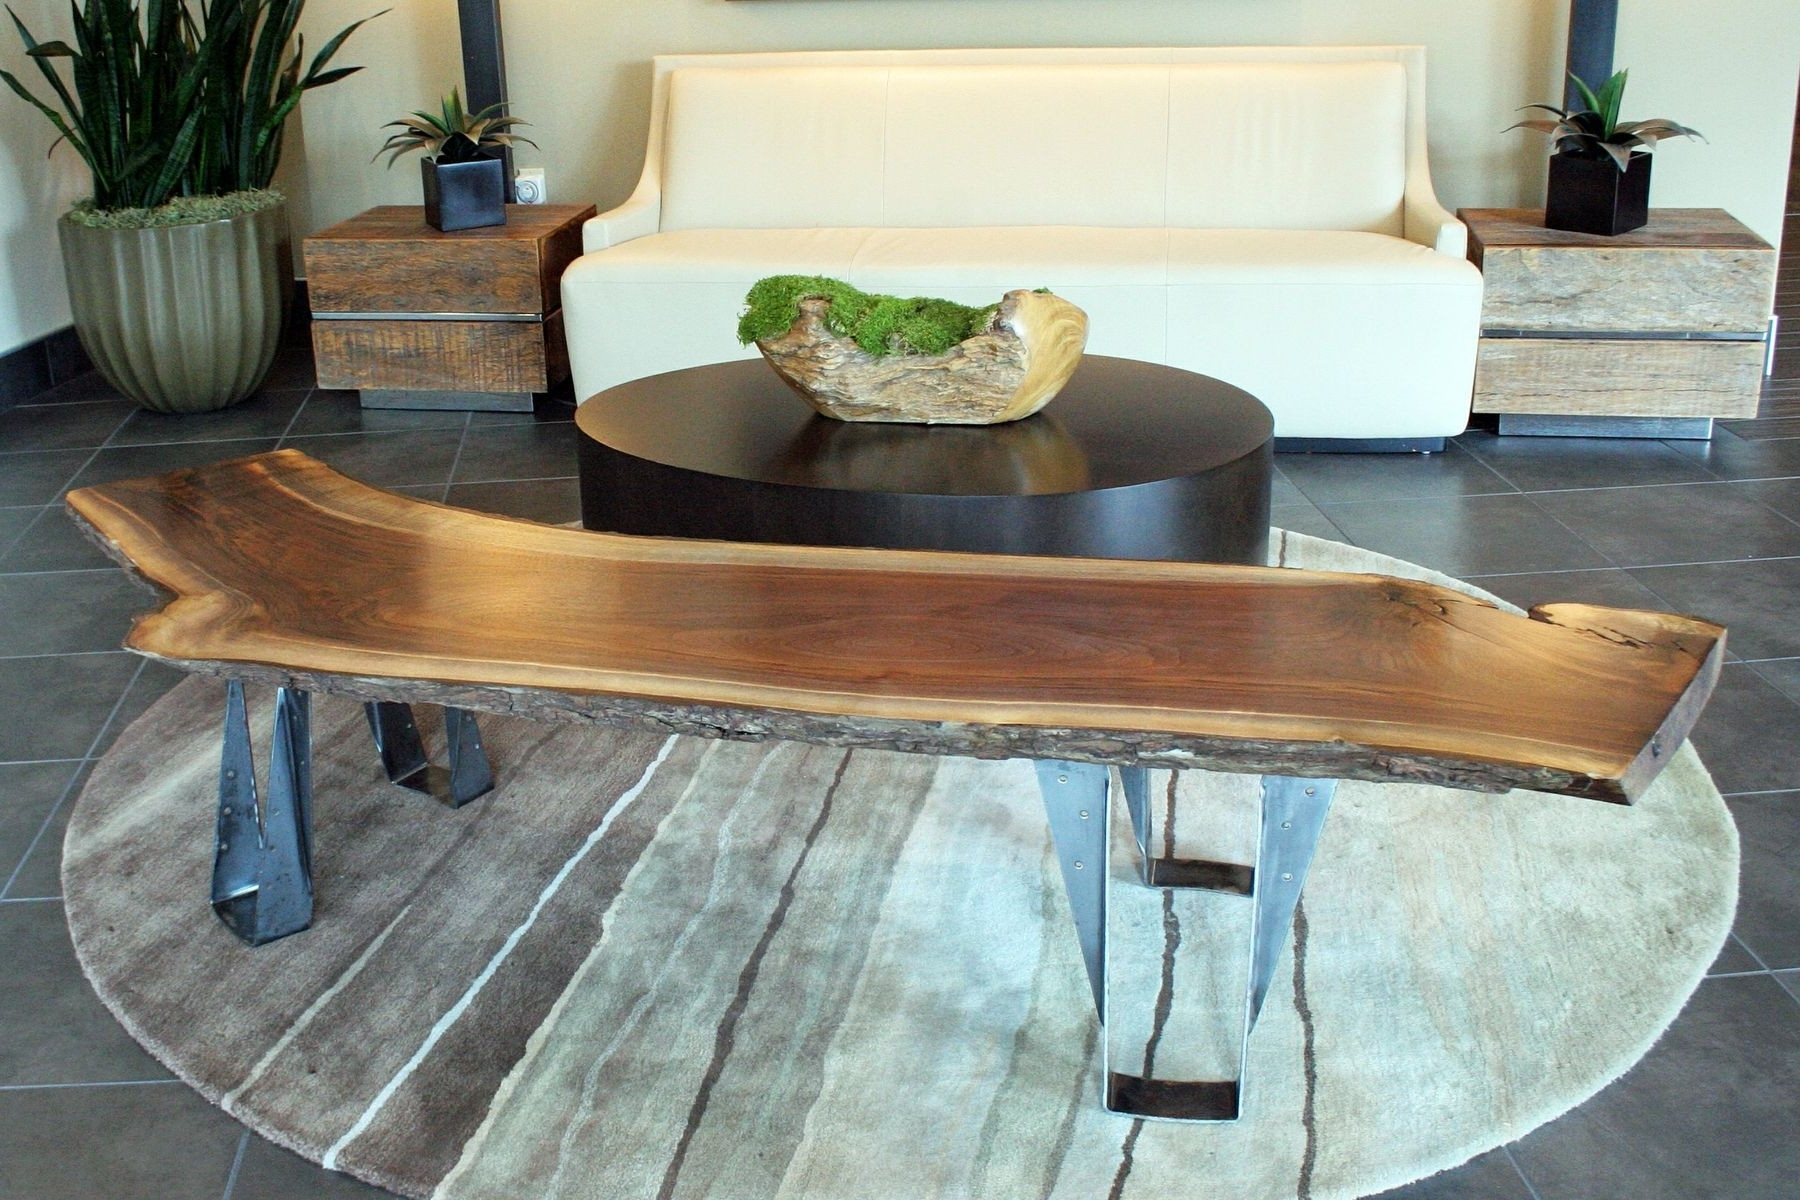 Mimodelaviation Pertaining To Most Recent Slab Large Marble Coffee Tables With Brass Base (View 13 of 20)